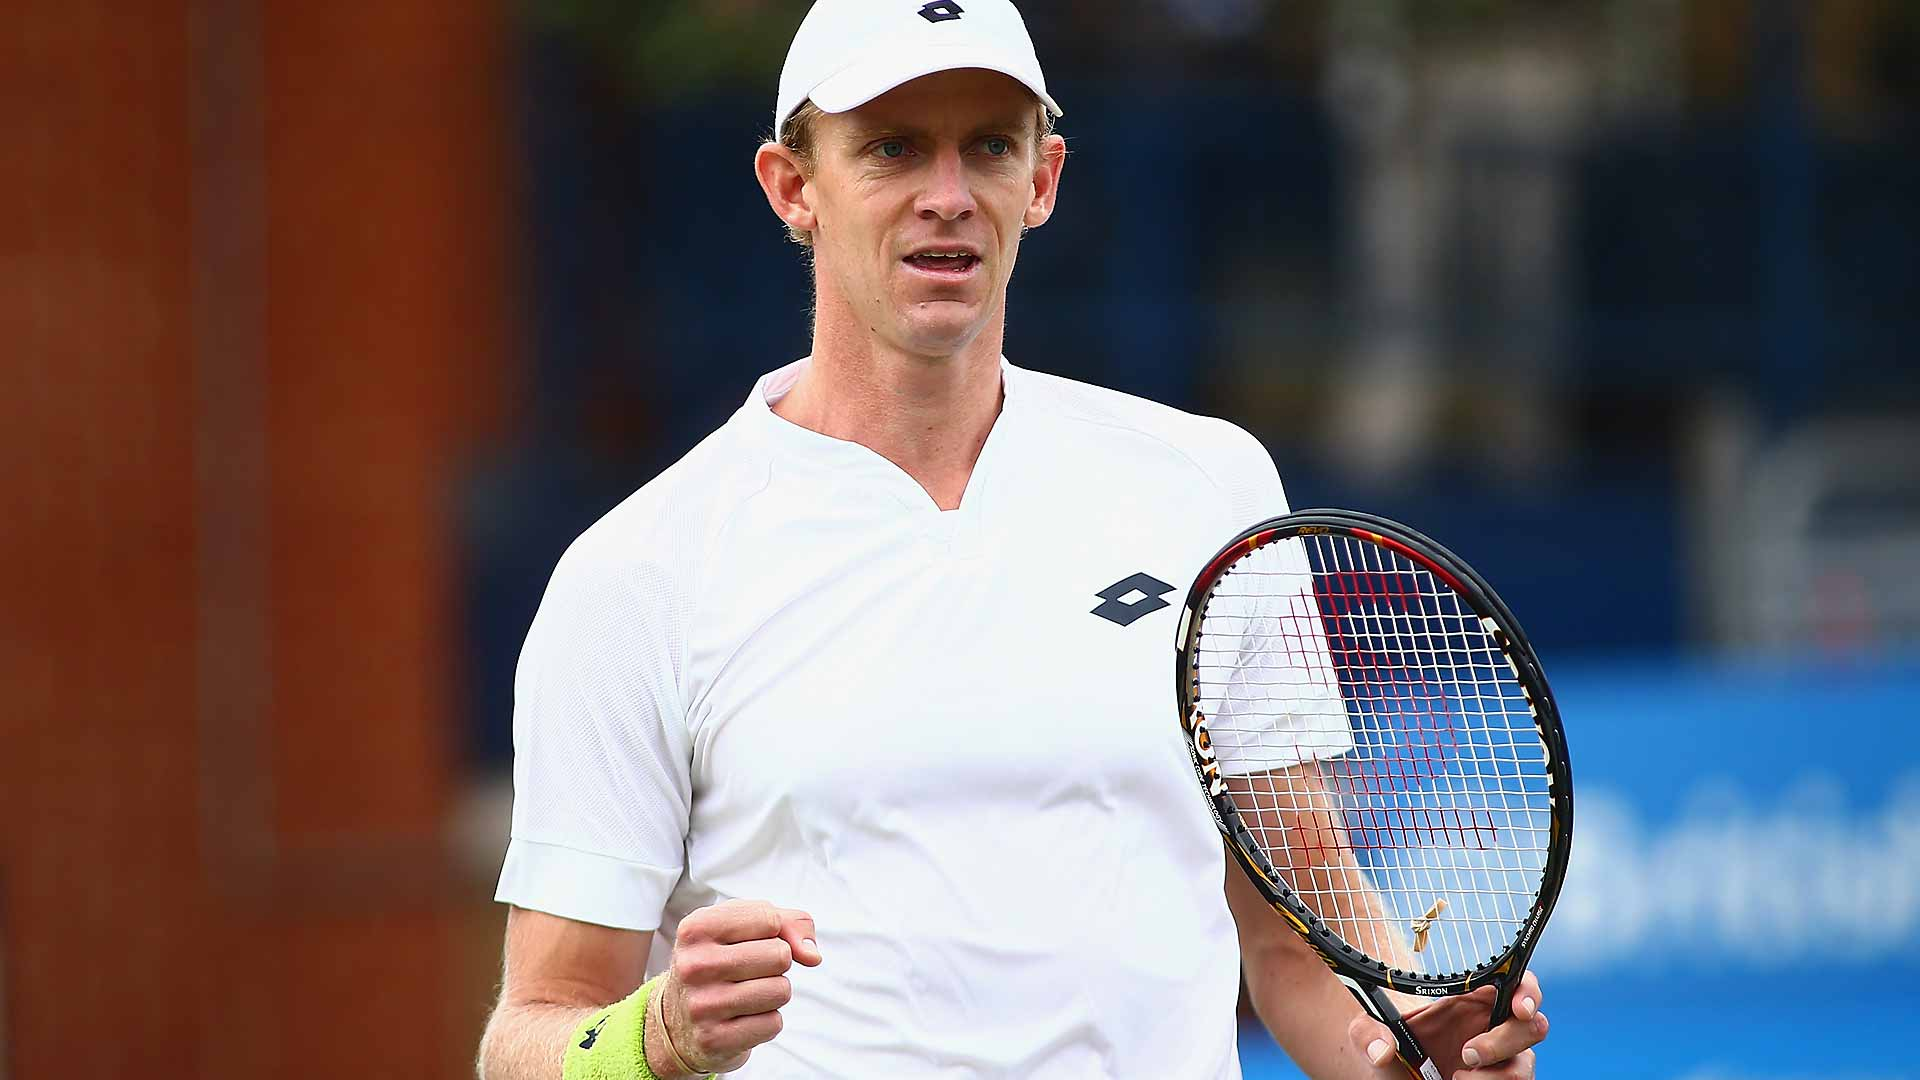 kevin anderson - photo #19